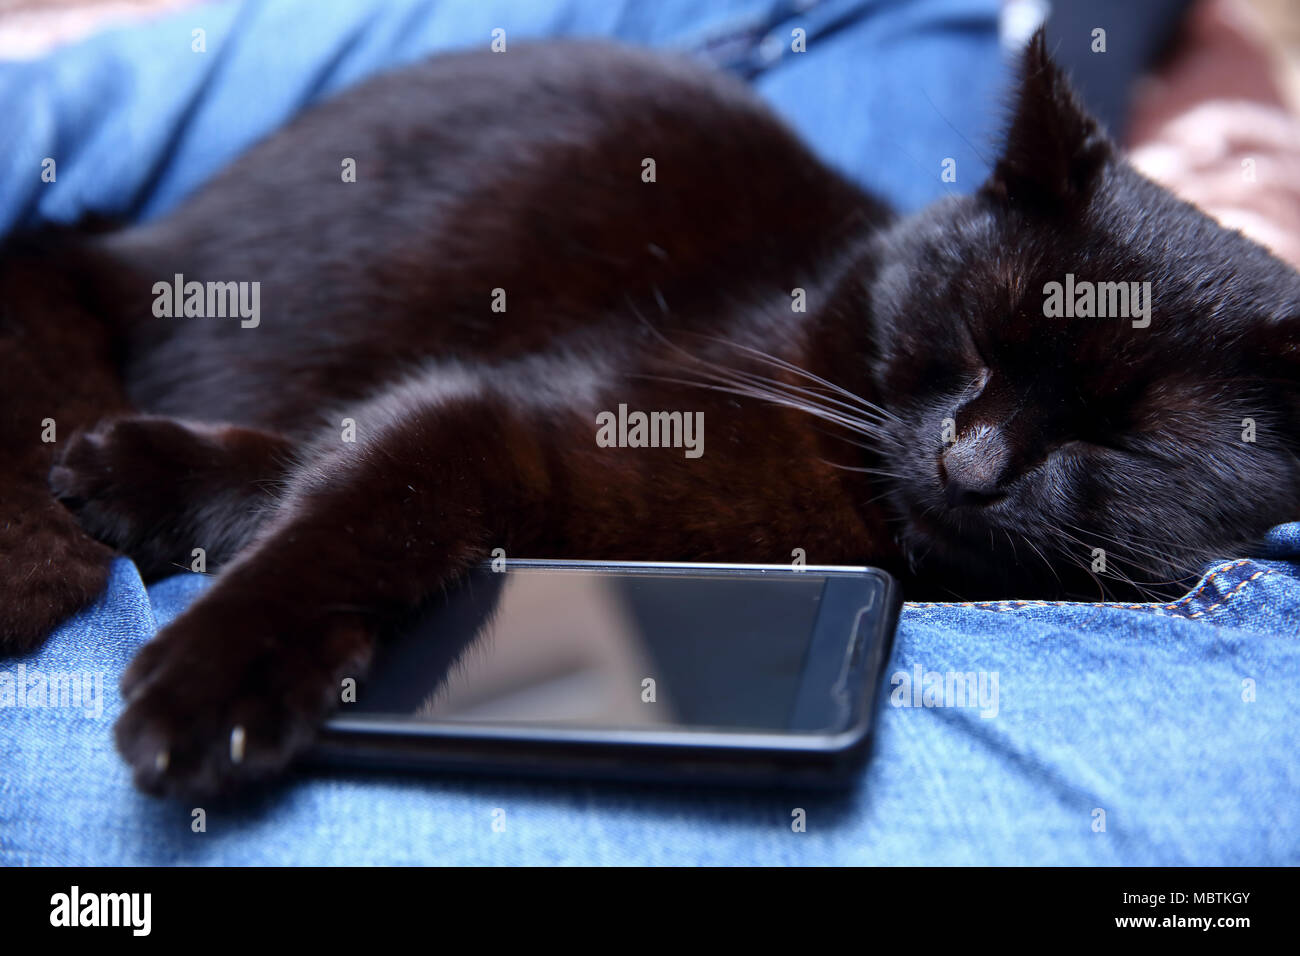 Cat who can not sleep without a smartphone. - Stock Image